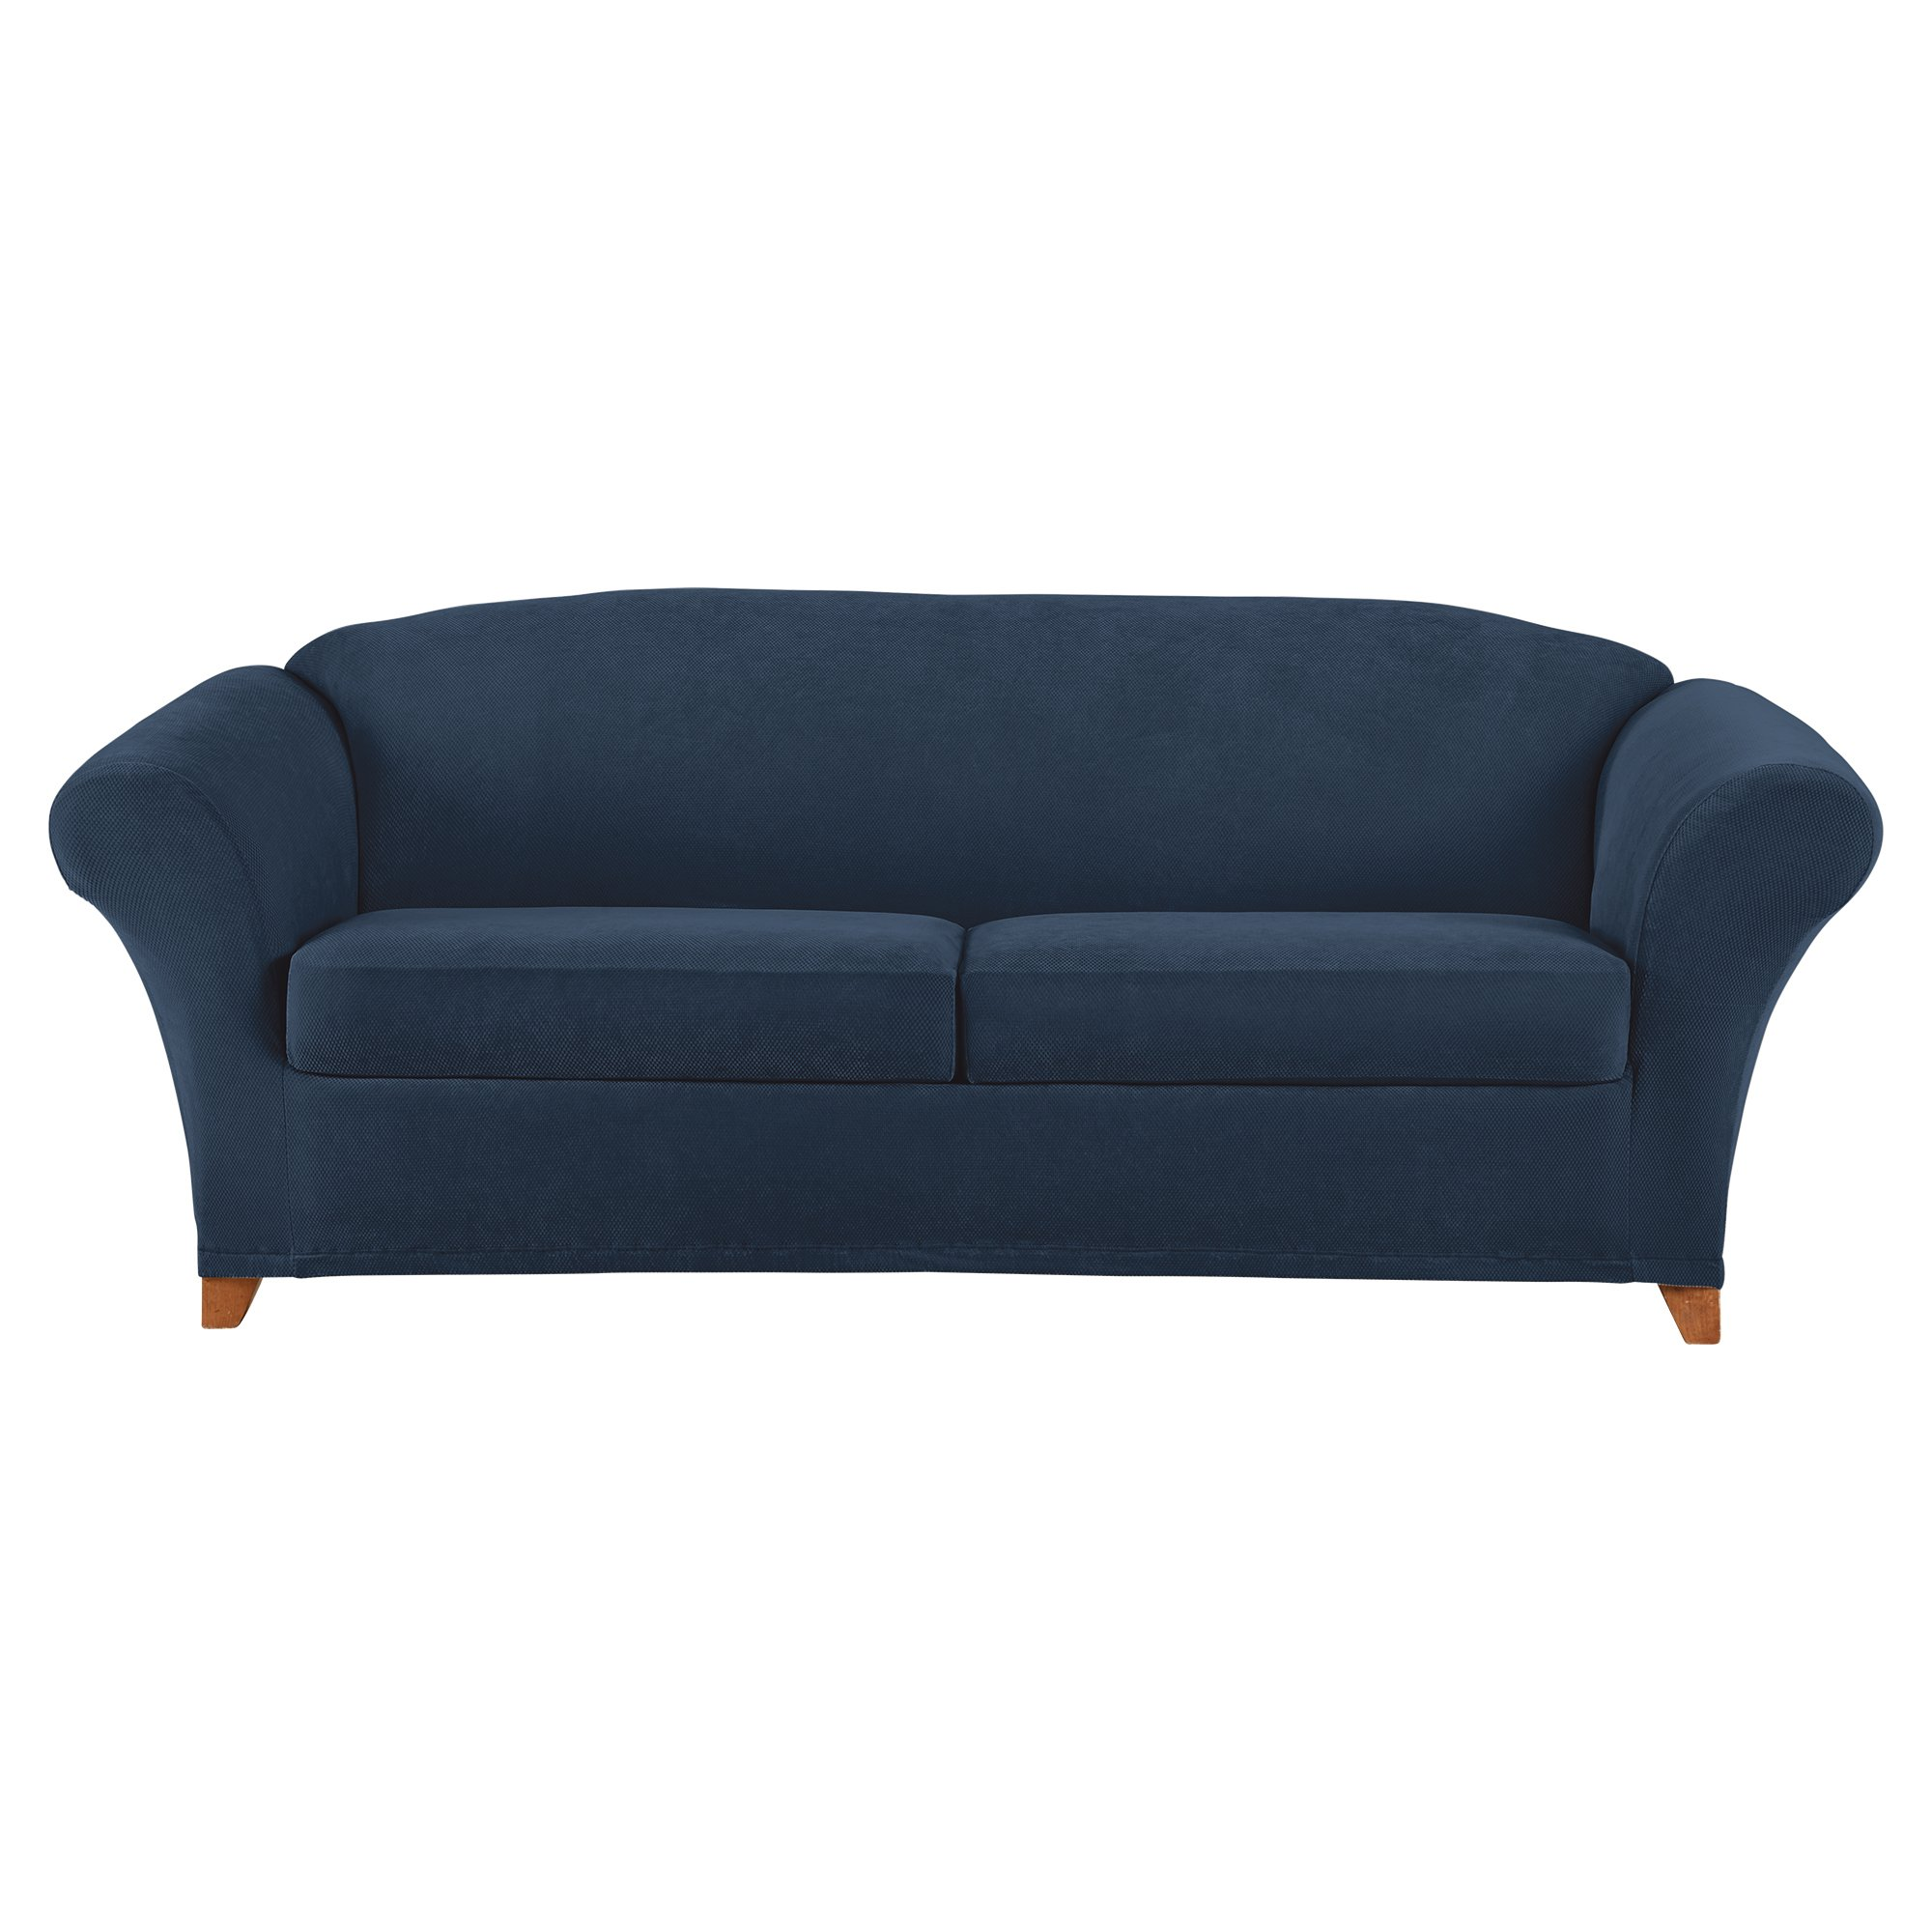 Sure Fit Stretch Pique 2 Seat Individual Cushion Sofa Covers - Navy (SF46904)